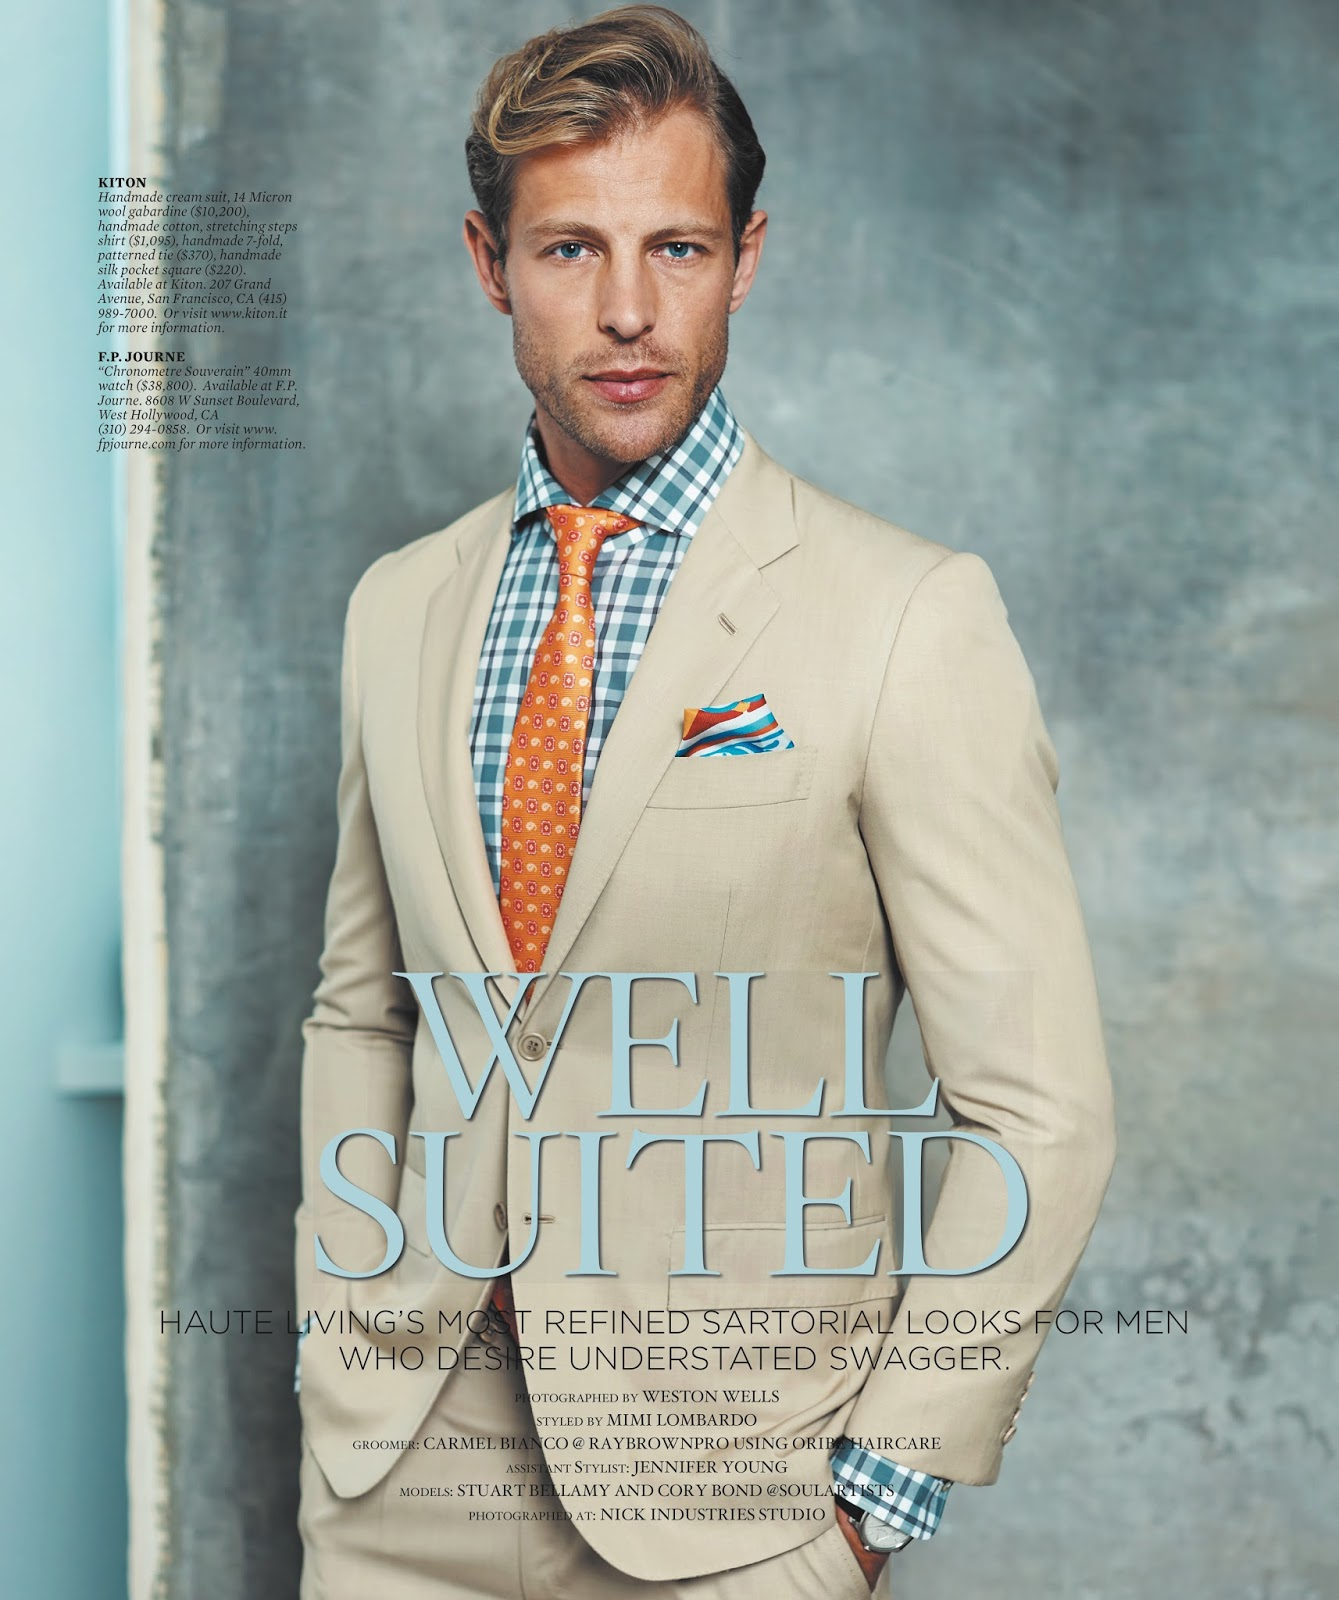 cory bond   stuart bellamy model sharp suiting for haute living